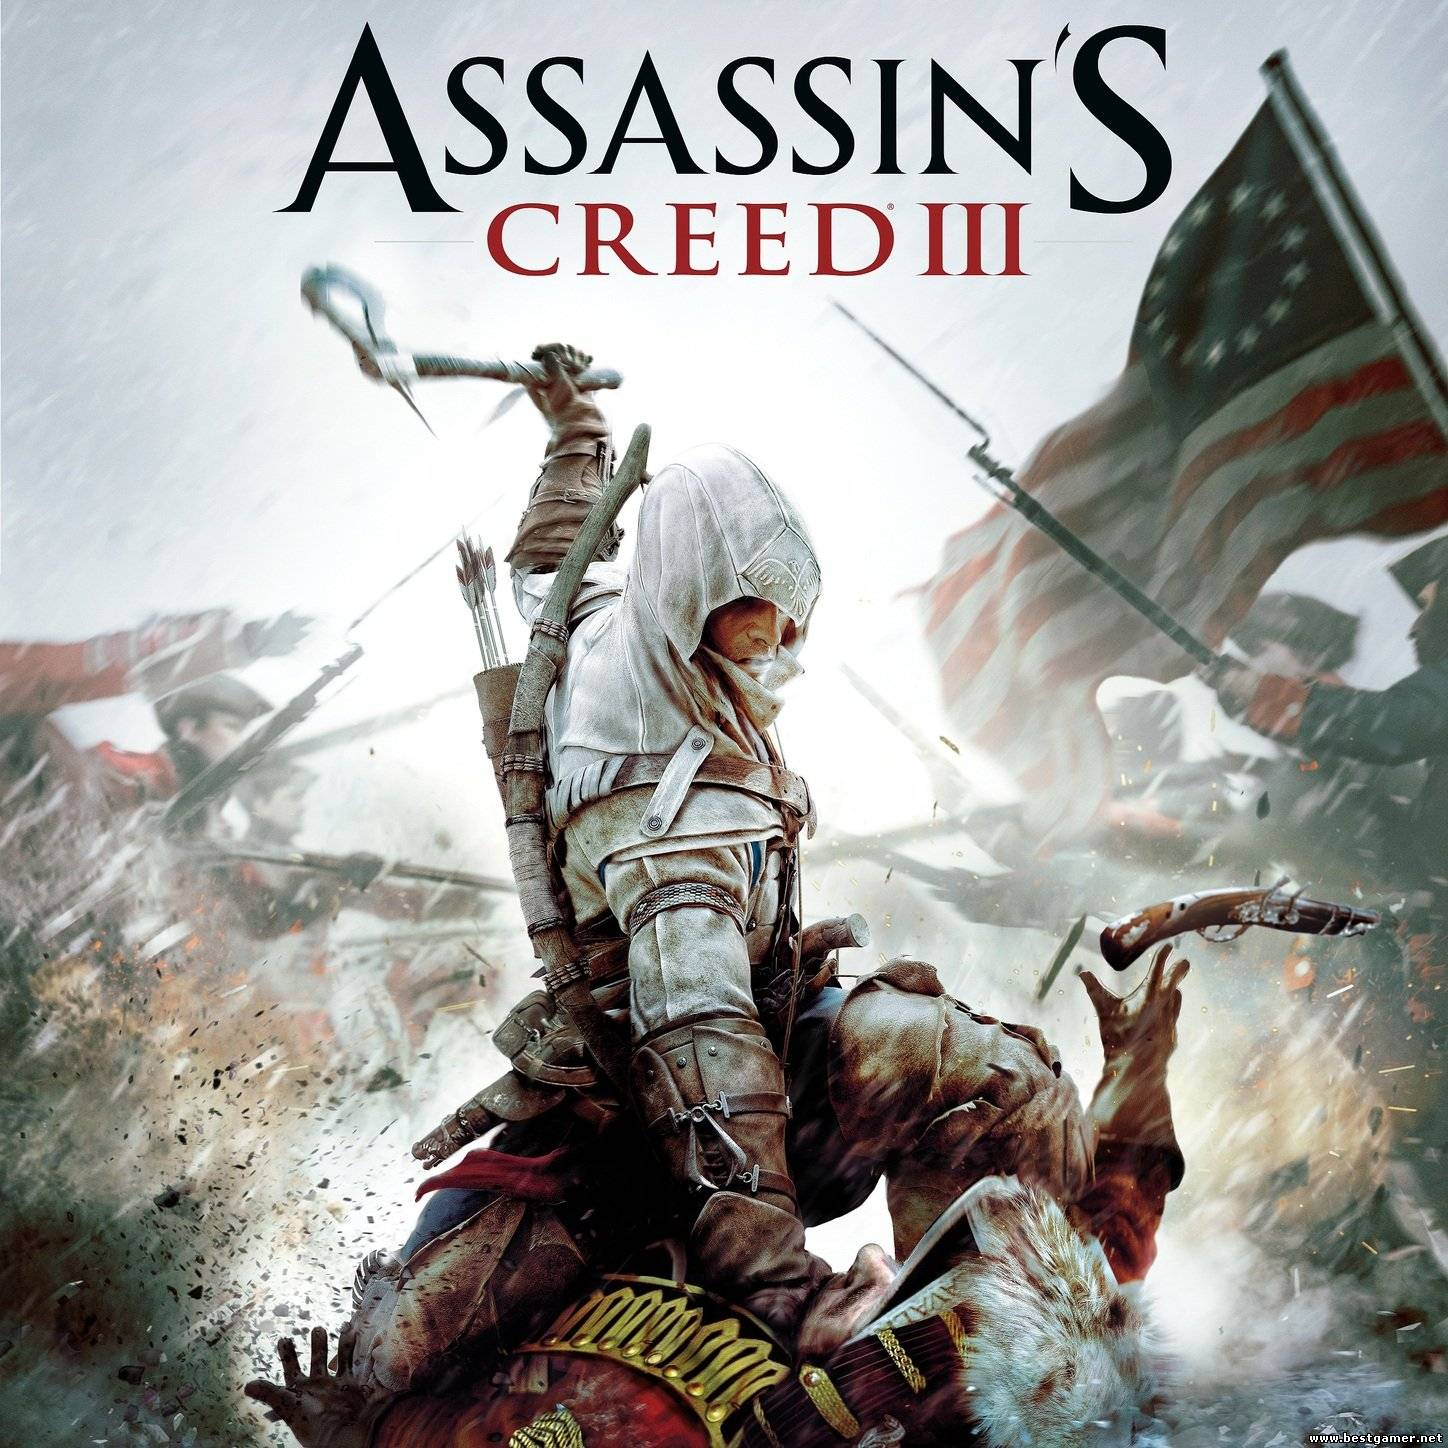 Сборка Assassin's Creed III Wallpaper Pack(960 х 720 до 3500 х 1874)JPG